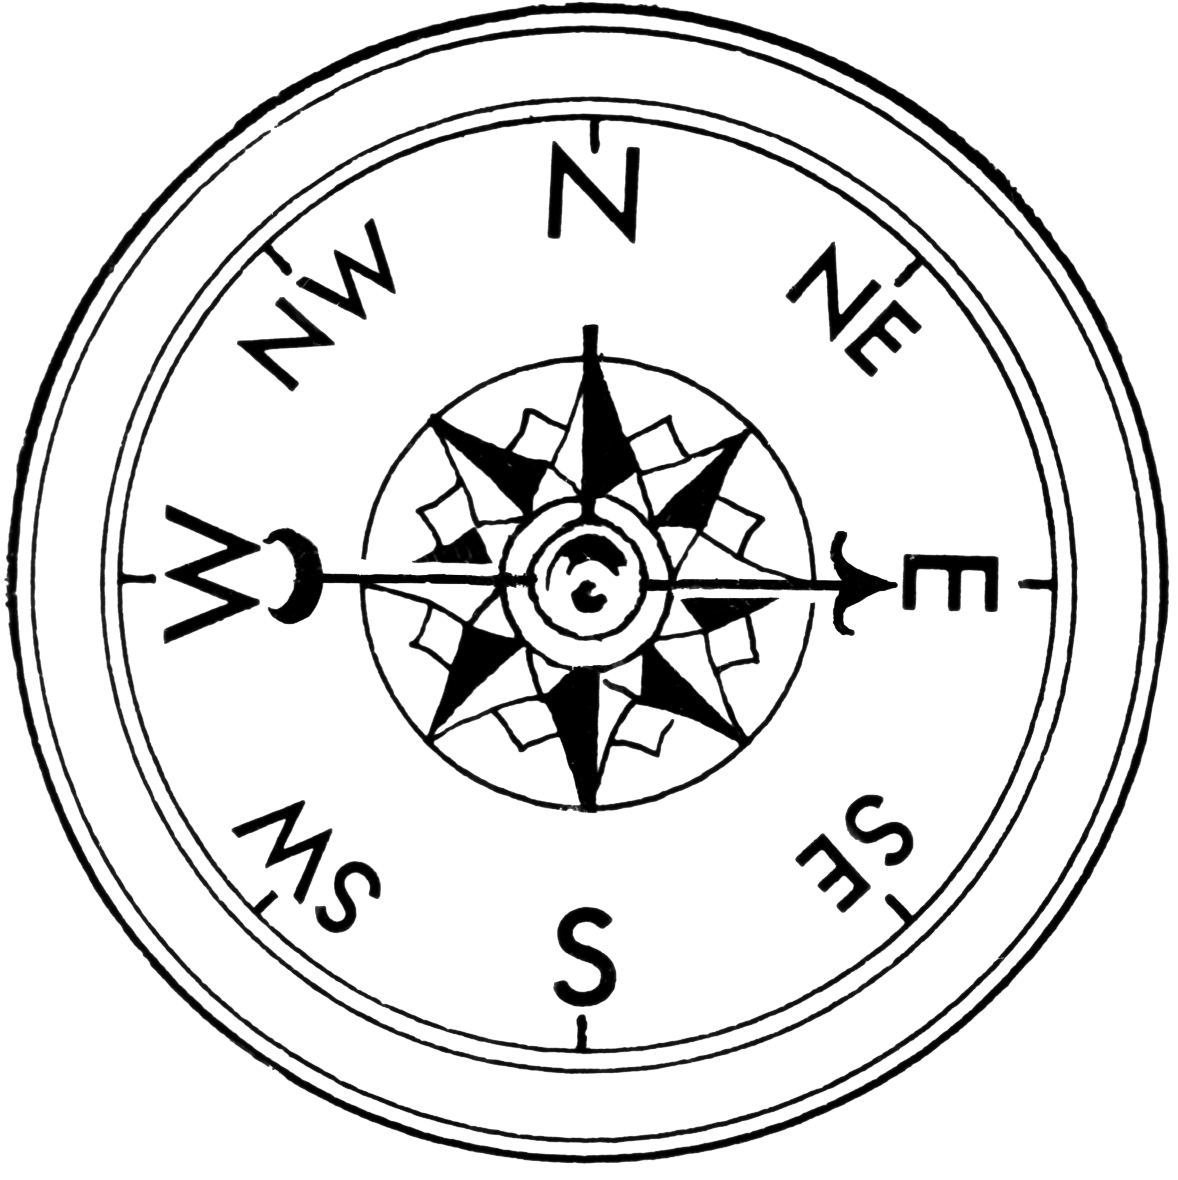 Results of Versus Populum—and Remedies Compass, Compass